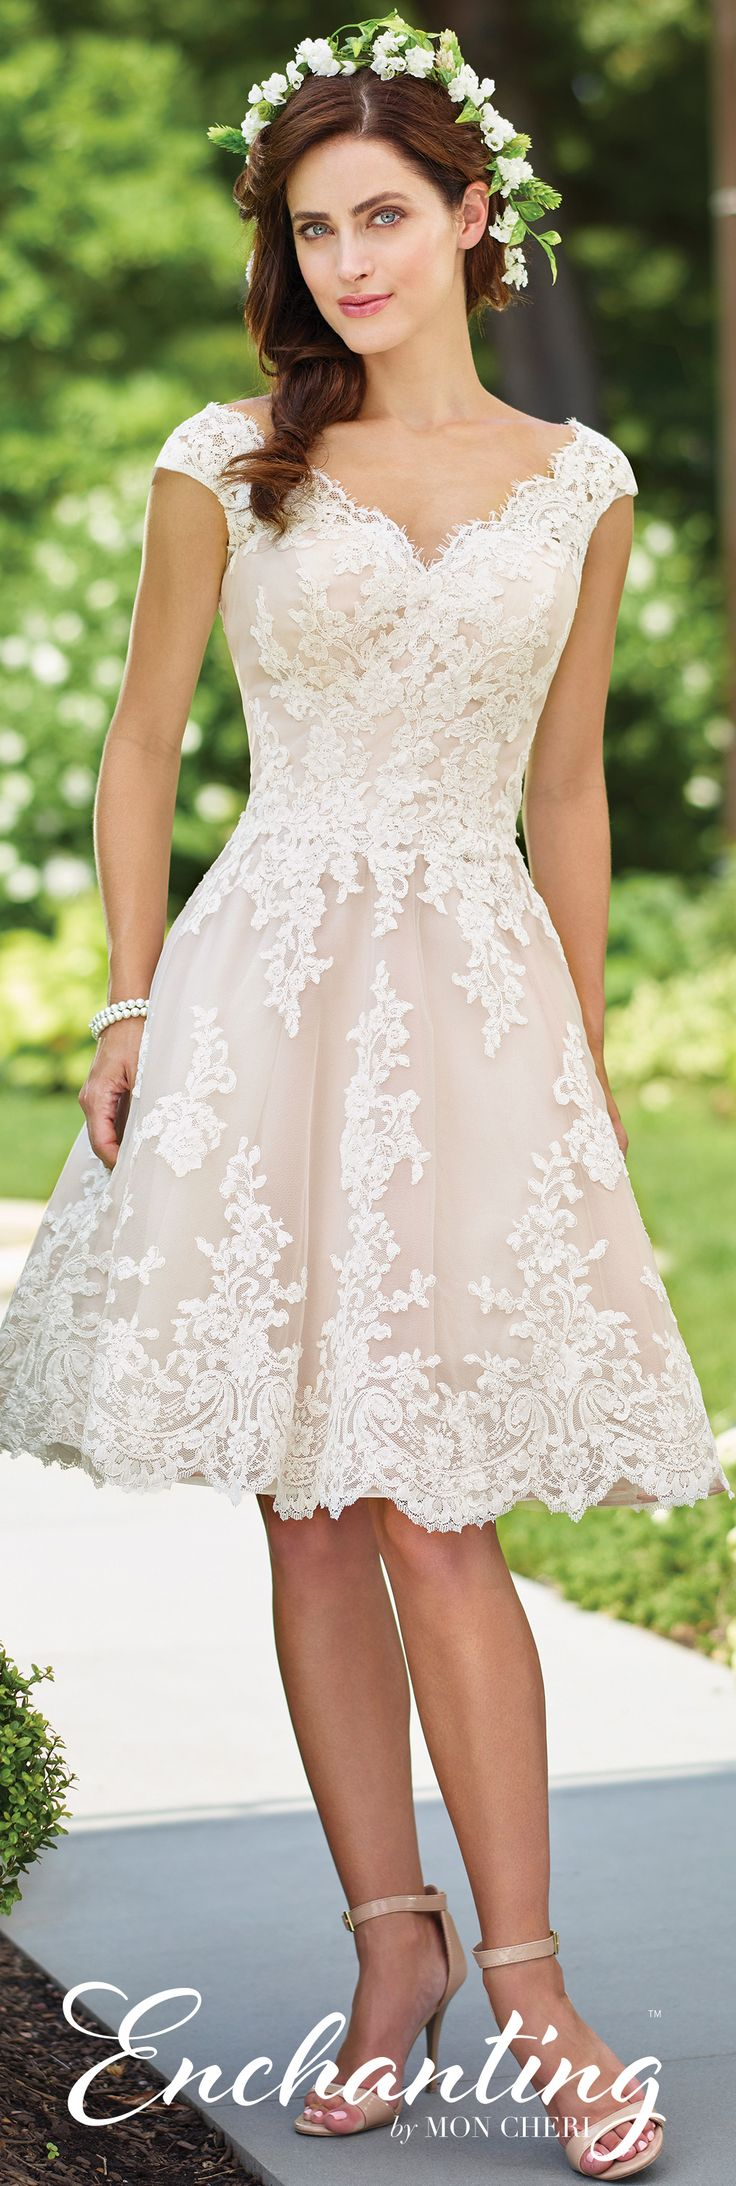 Unique Enchanting by Mon Cheri Spring Wedding Gown Collection Style No lace